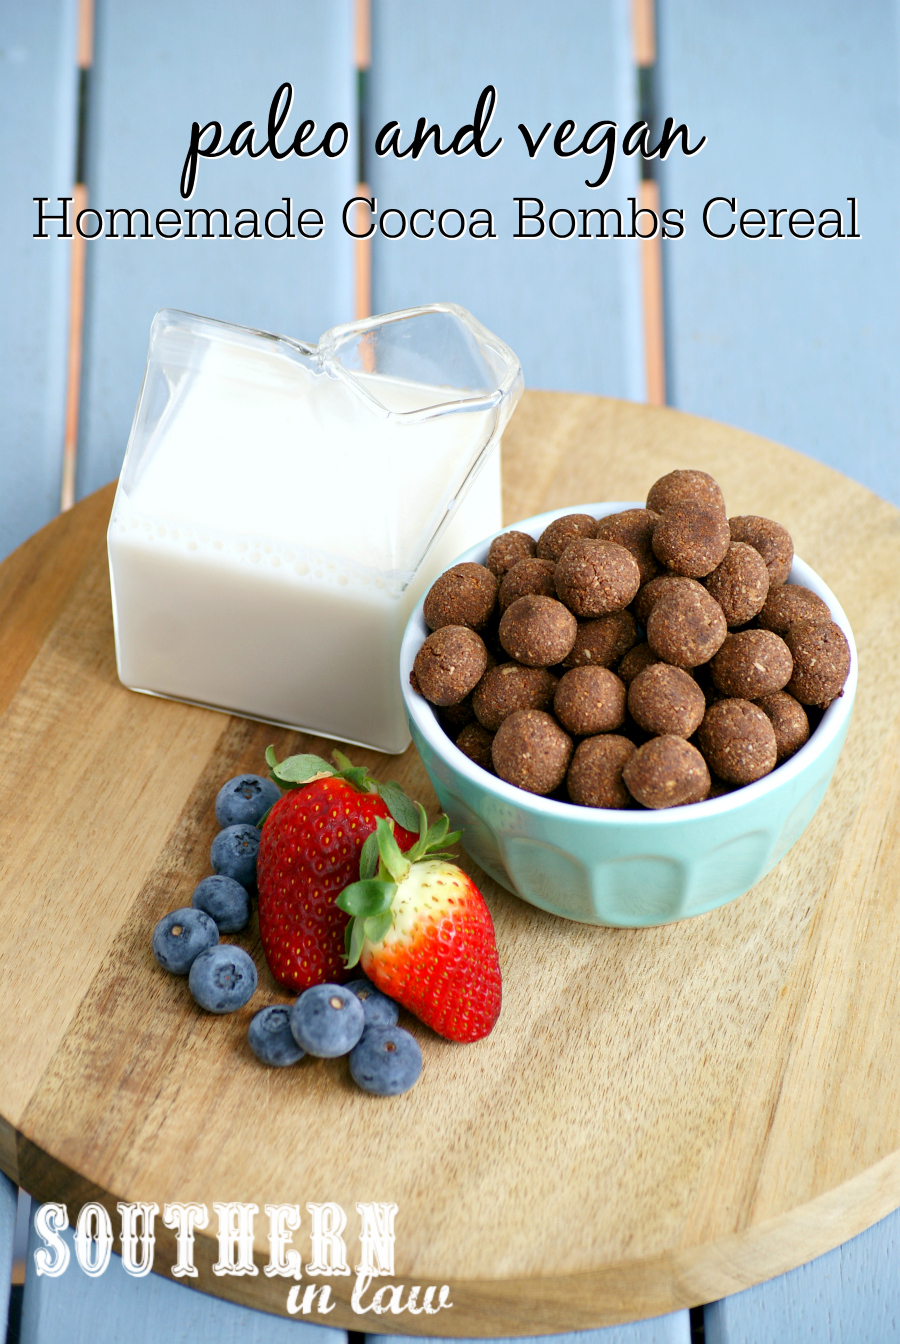 Southern in law recipe homemade paleo cocoa bombs cereal vegan and lets be honest delicious things in the world i decided to make my own and thus this delicious paleo cocoa bombs cereal recipe was born ccuart Choice Image